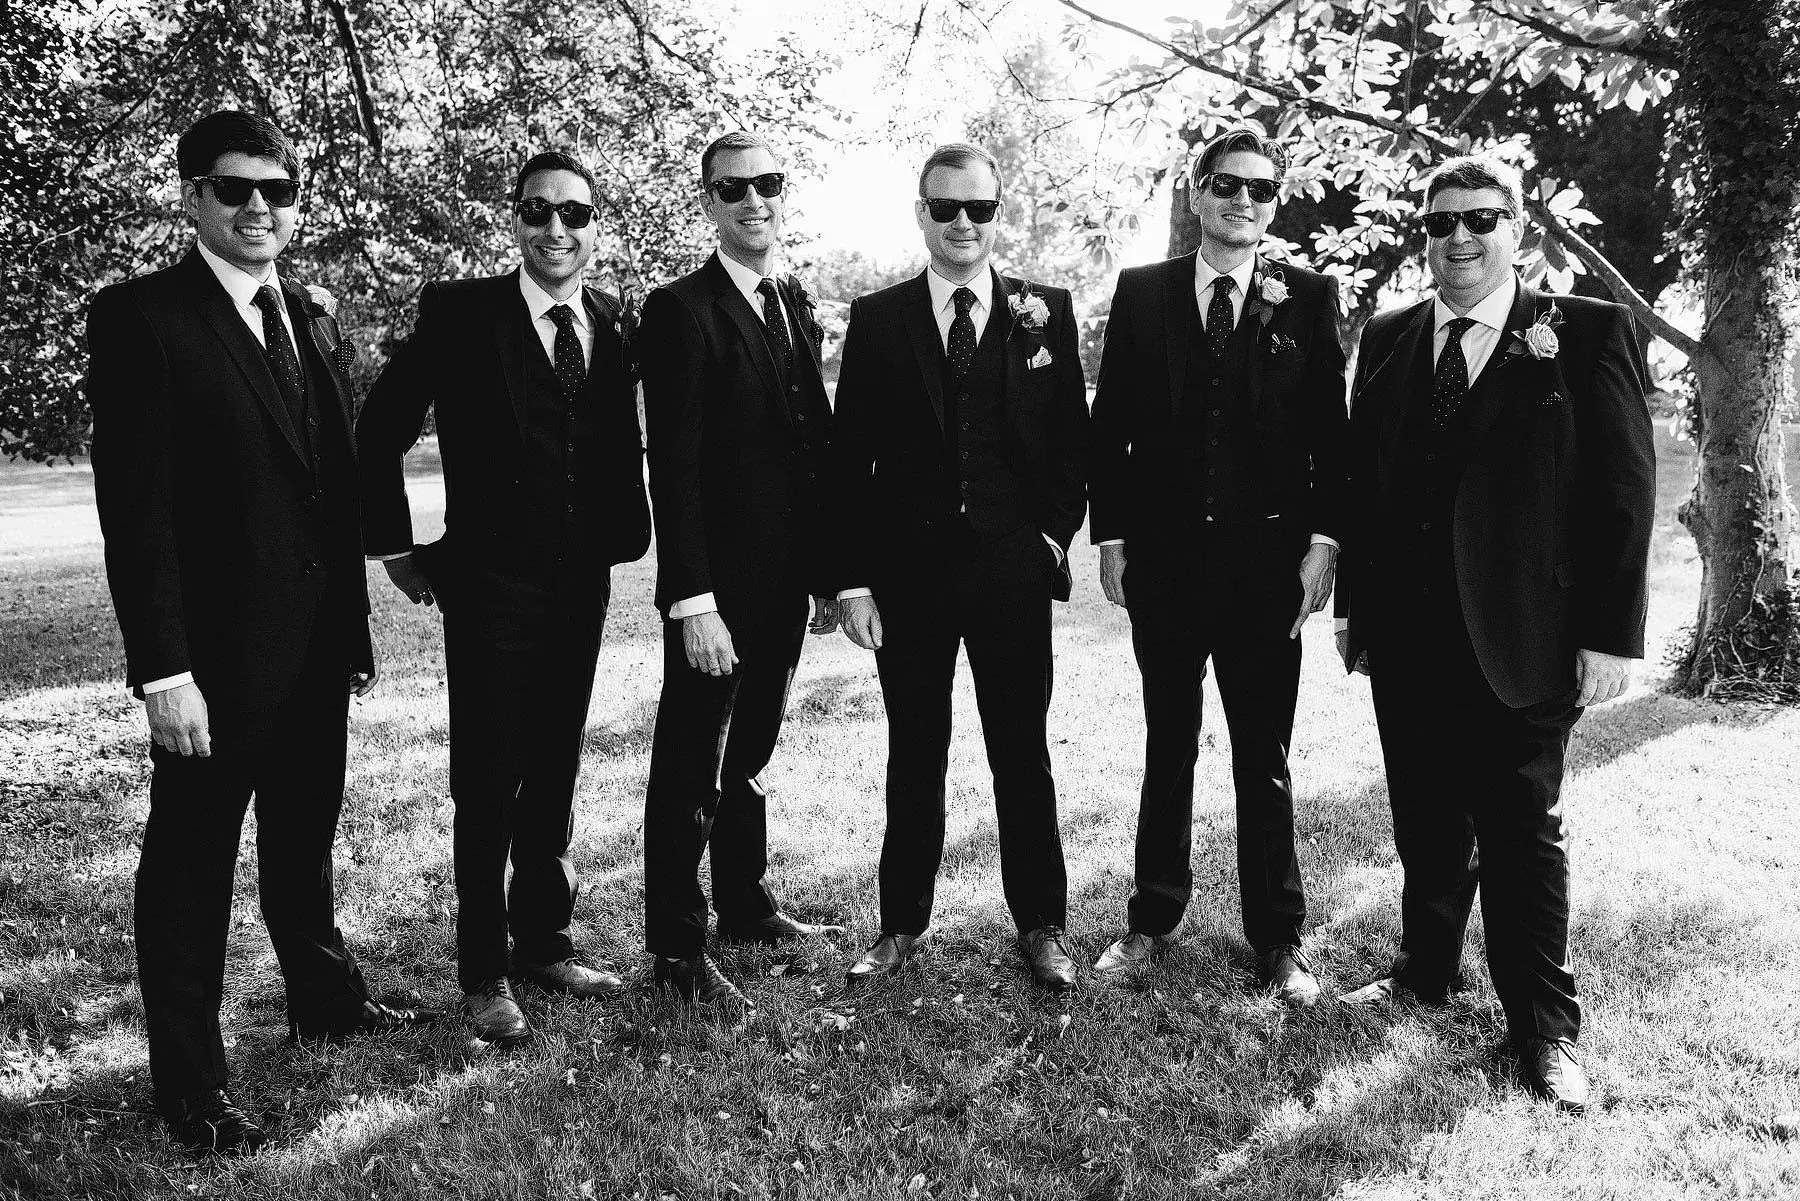 guys looking cool at a wedding